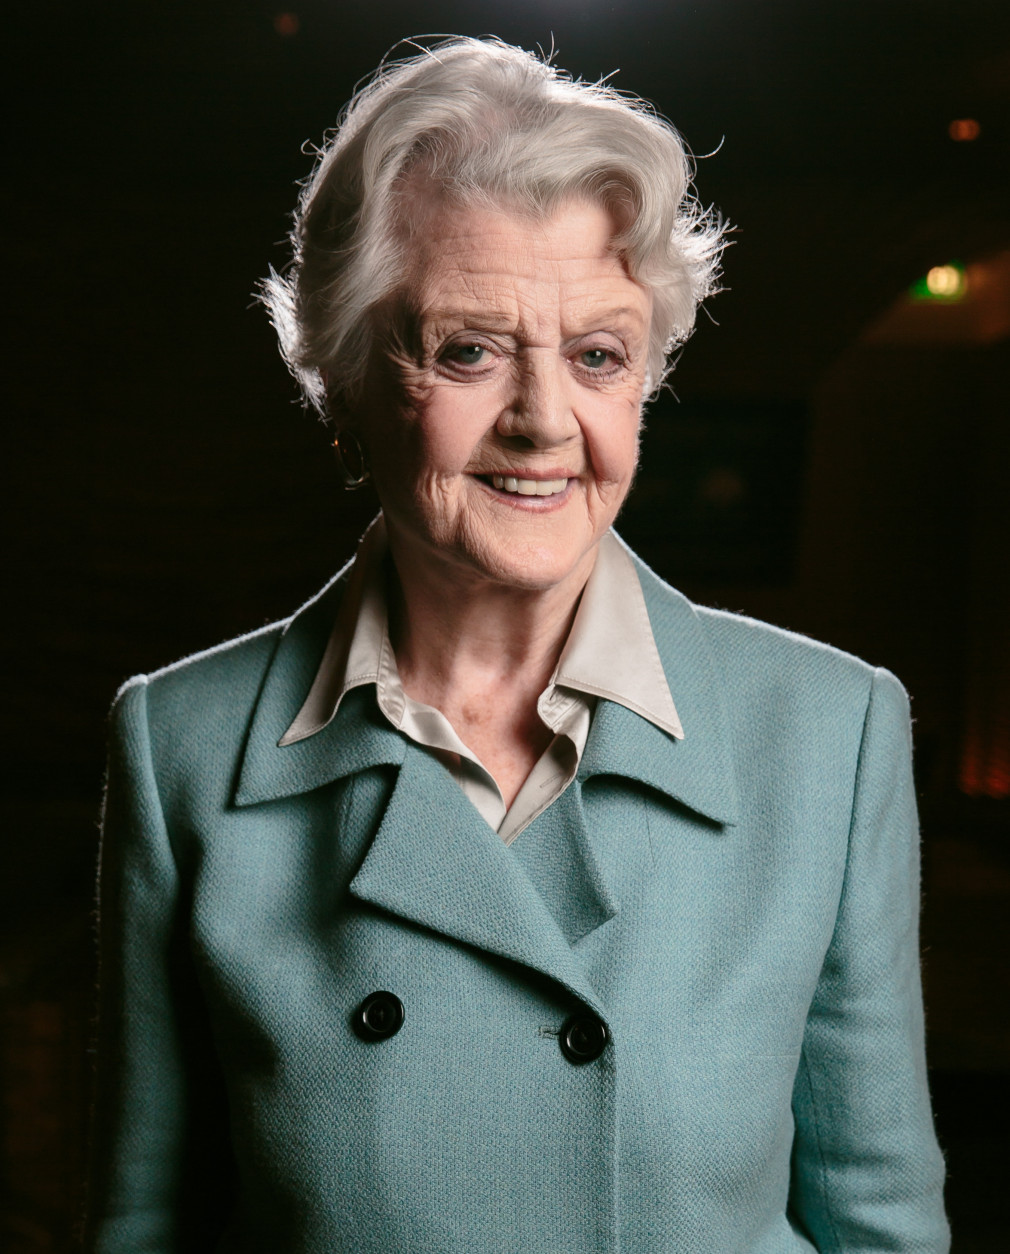 <p><strong>Oct. 16</strong>: <strong>Actress Angela Lansbury is 94</strong>. Actor Peter Bowles (&#8220;Victoria,&#8221; &#8221;Rumpole of the Bailey&#8221;) is 83. Actor Barry Corbin (&#8220;One Tree Hill,&#8221; &#8221;Northern Exposure&#8221;) is 79. Bassist C.F. Turner of Bachman-Turner Overdrive is 76. Actress Suzanne Somers is 73. Guitarist Bob Weir of the Grateful Dead is 72. Producer-director David Zucker is 72. Actress Martha Smith (&#8220;Animal House,&#8221; &#8221;Scarecrow and Mrs. King&#8221;) is 67. Actor Andy Kindler (&#8220;Everybody Loves Raymond&#8221;) is 63. Actor-director Tim Robbins is 61. Guitarist Gary Kemp (Spandau Ballet) is 60. Singer Bob Mould (Husker Du) is 59. Actor Randy Vasquez (&#8220;JAG&#8221;) is 58. Bassist Flea of the Red Hot Chili Peppers is 57. Actor Christian Stolte (&#8220;Chicago Fire&#8221;) is 57. Actress Terri J. Vaughn (&#8220;All of Us,&#8221; &#8221;The Steve Harvey Show&#8221;) is 50. Singer Wendy Wilson of Wilson Phillips is 50. Rapper B-Rock of B-Rock and the Bizz is 48. Singer Chad Gray of Mudvayne is 48. Actor Paul Sparks (&#8220;Boardwalk Empire&#8221;) is 48. Actress Kellie Martin (&#8220;Christy,&#8221; &#8221;Life Goes On&#8221;) is 44. Singer-songwriter John Mayer is 42. Actor Jeremy Jackson (&#8220;Baywatch&#8221;) is 39. Actress Caterina Scorsone (&#8220;Grey&#8217;s Anatomy&#8221;) is 39. Actress Brea Grant (&#8220;Heroes&#8221;) is 38. Actor Kyler Pettis (&#8220;Days of Our Lives&#8221;) is 27.</p>